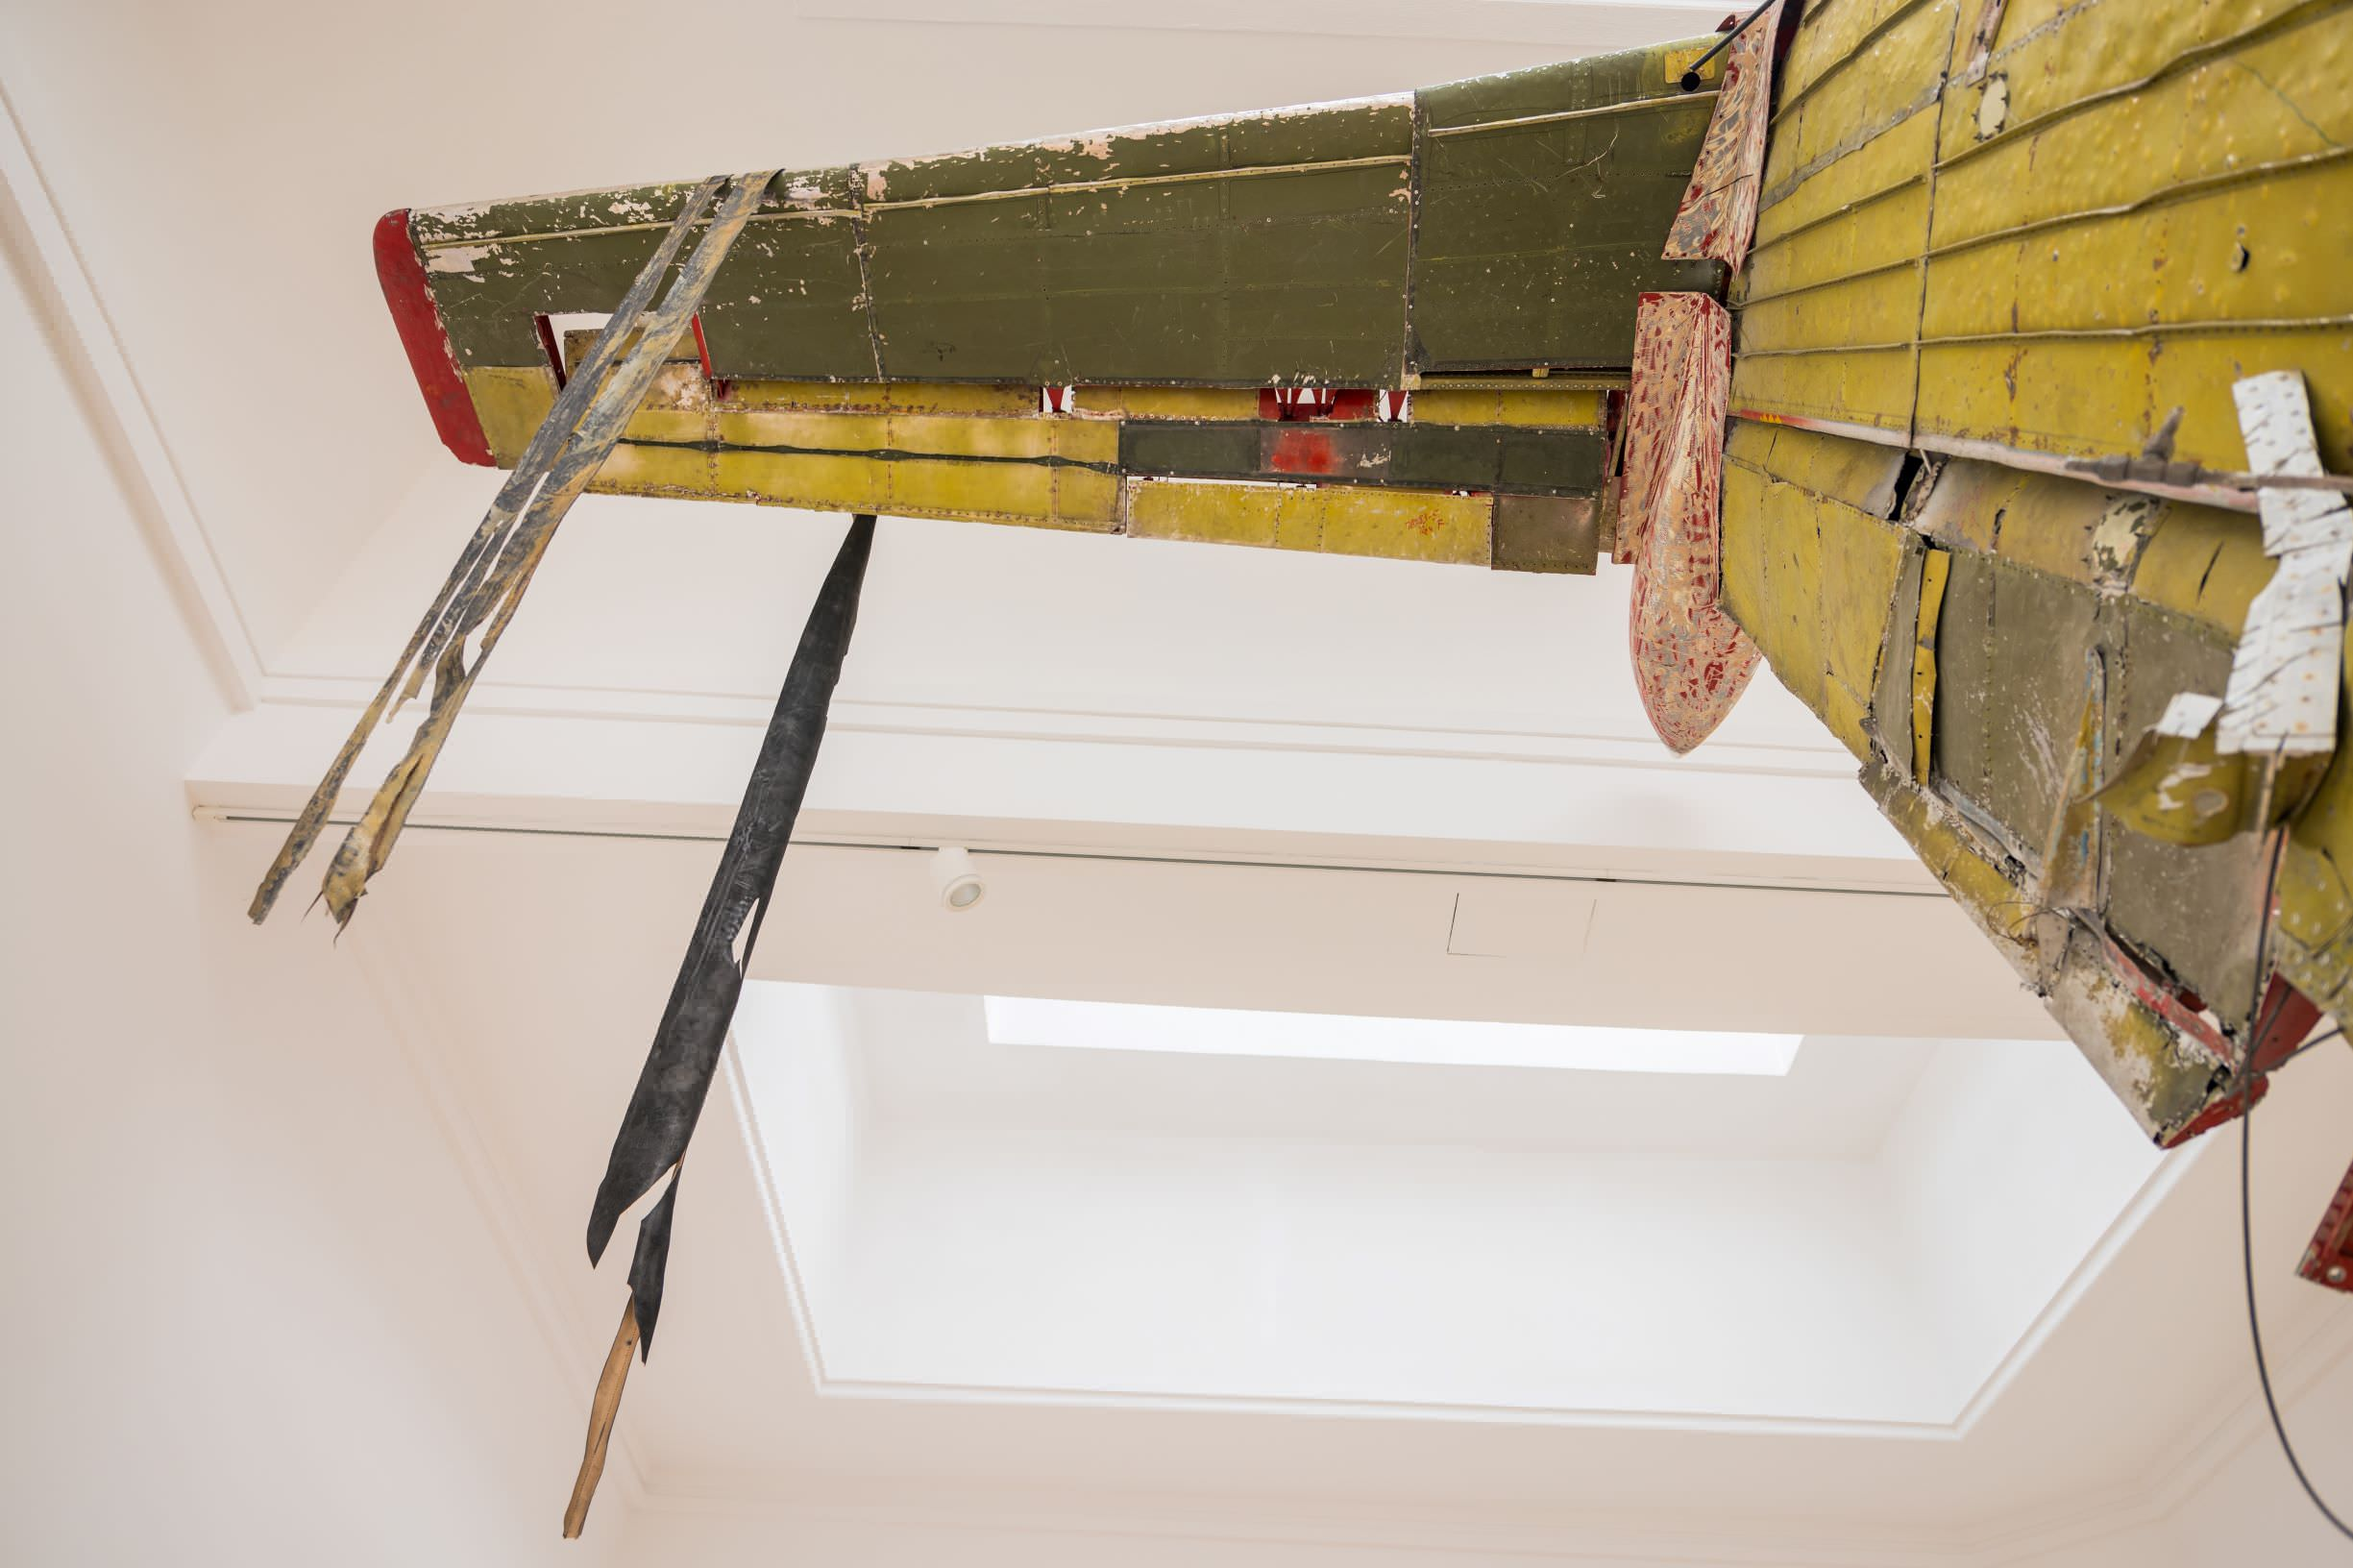 Flight, sculpture by Roman Stańczak at the Polish Pavilion, exhibition documentation, 2019, photo: Zachęta – National Gallery of Art/Weronika Wysocka.